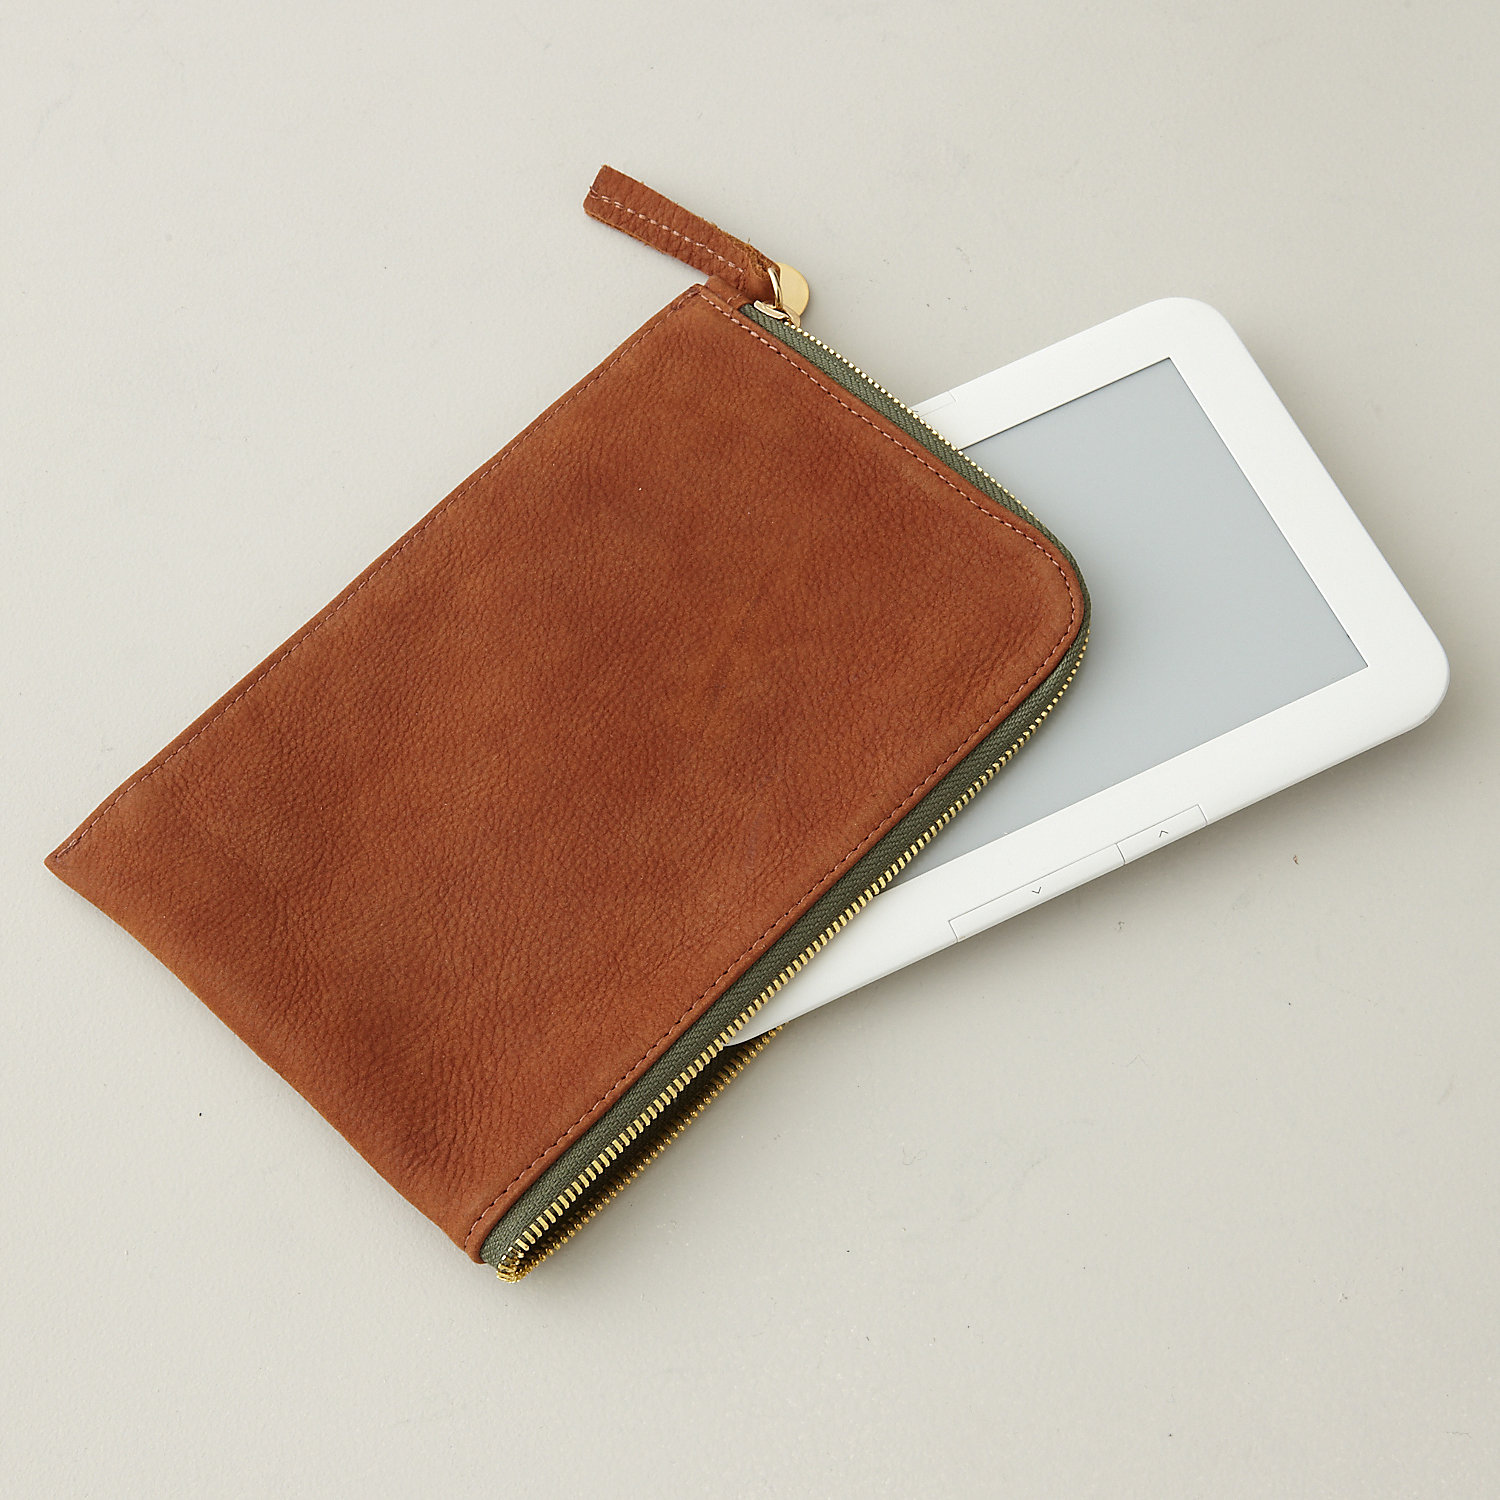 LEATHER KINDLE FIRE CASE